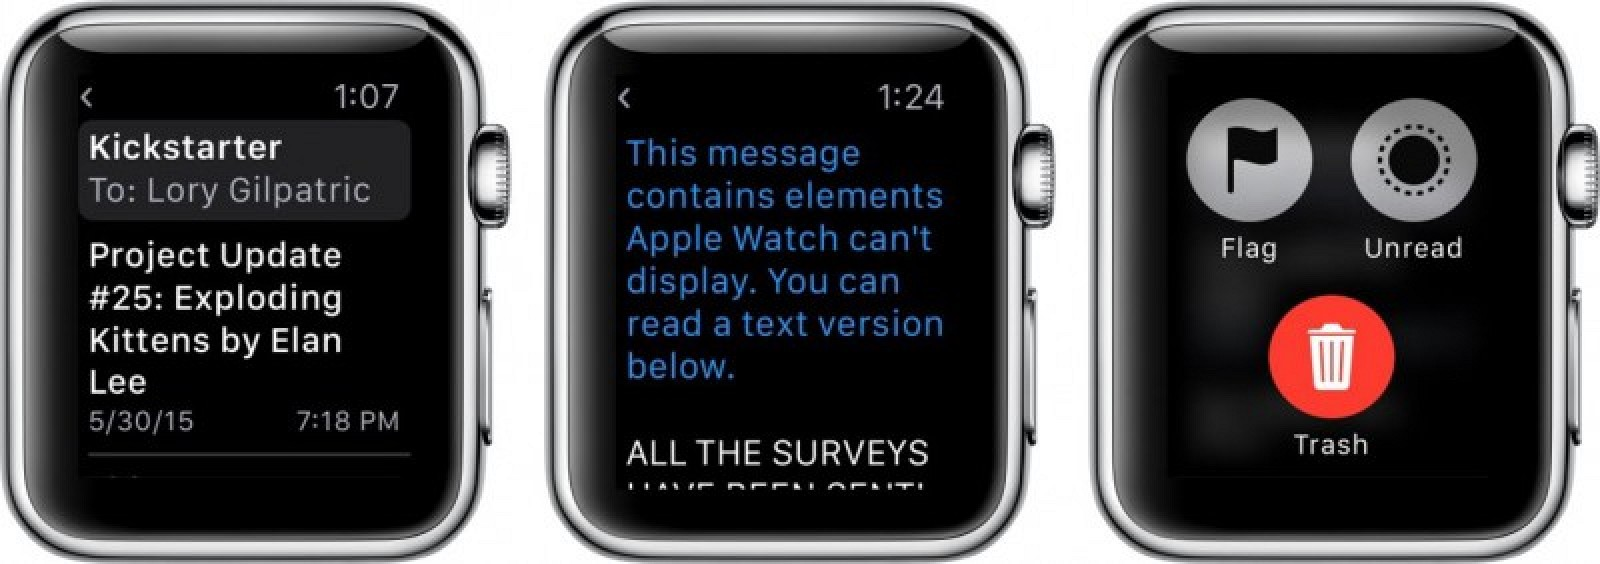 How To Use The Mail App On Apple Watch Mac Rumors